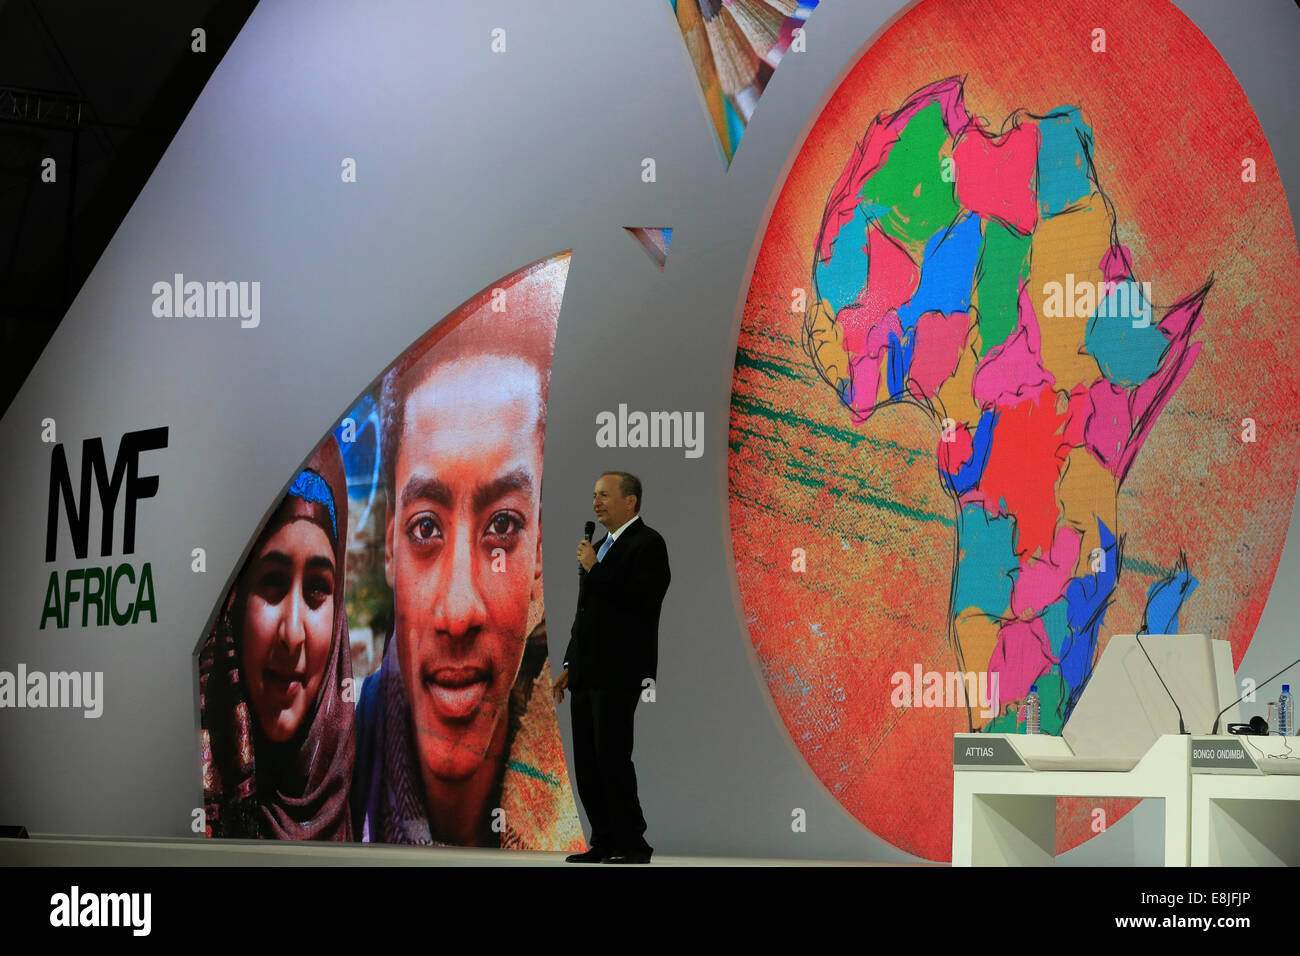 The New York Forum Africa.  Lawrence Summers. - Stock Image